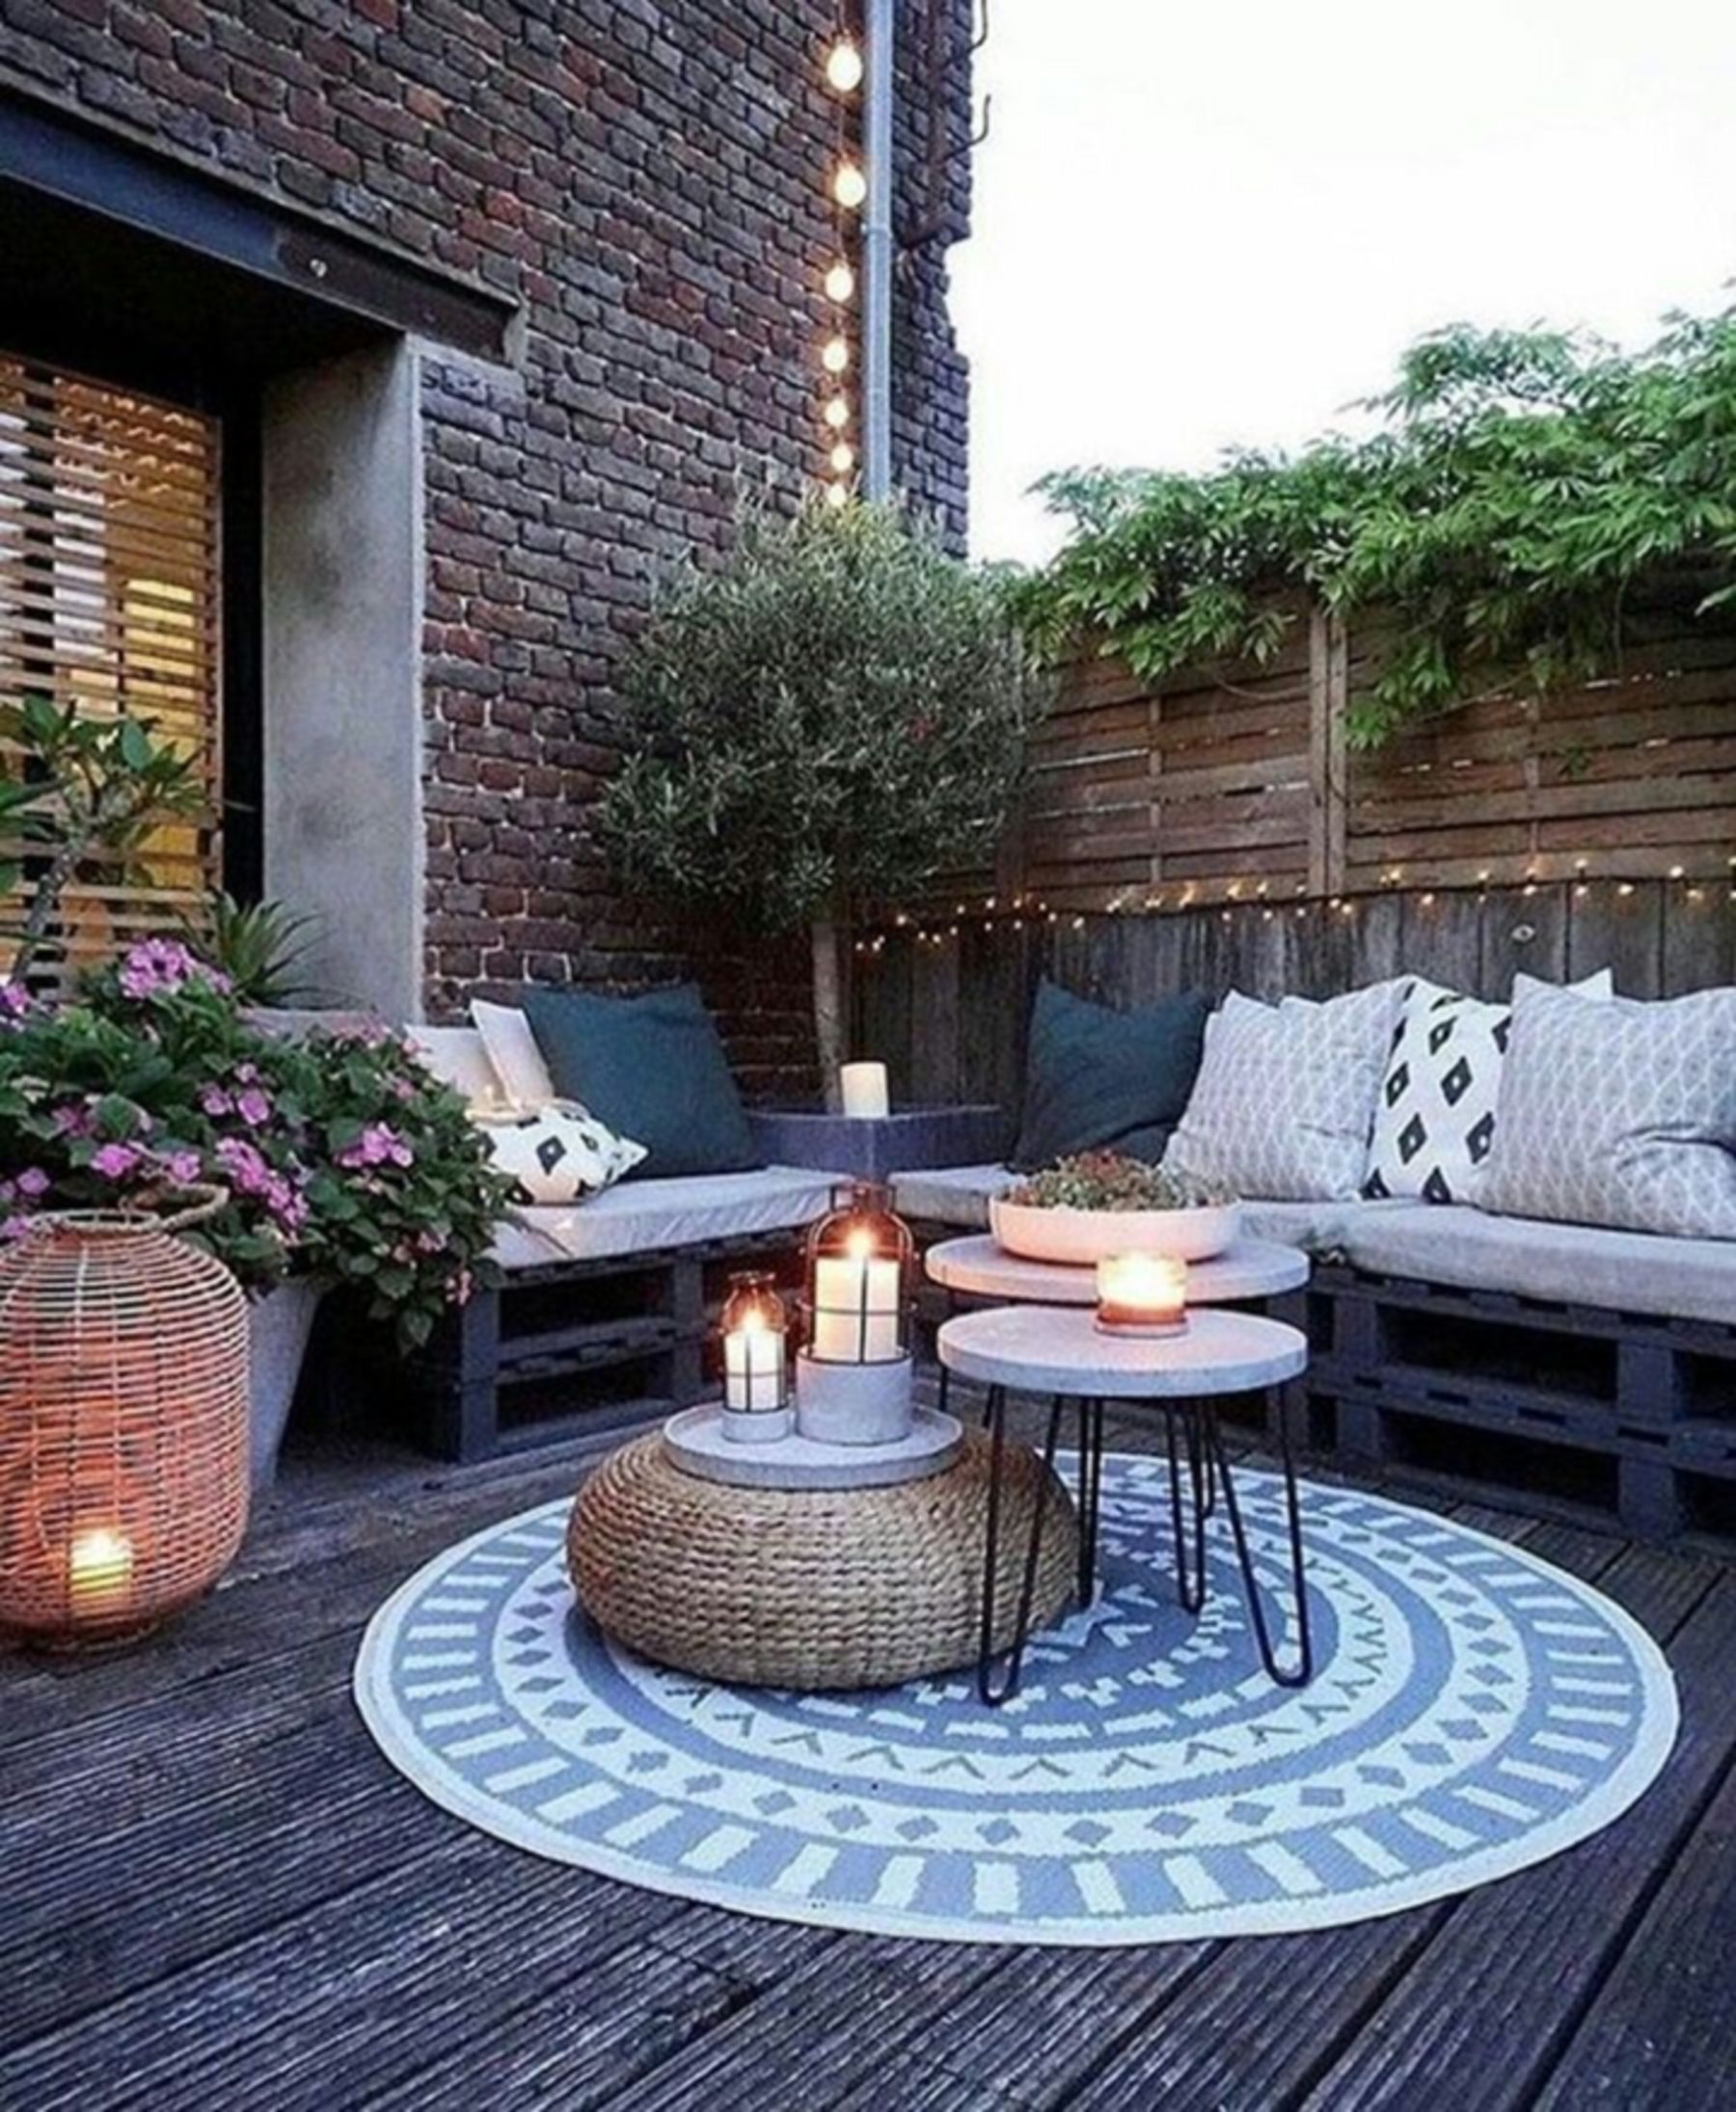 Top 12 Stunning Outdoor Living Room Design Ideas That Will Make Your Guest Cozy Diy Outdoor Seating Small Apartment Patio Backyard Patio